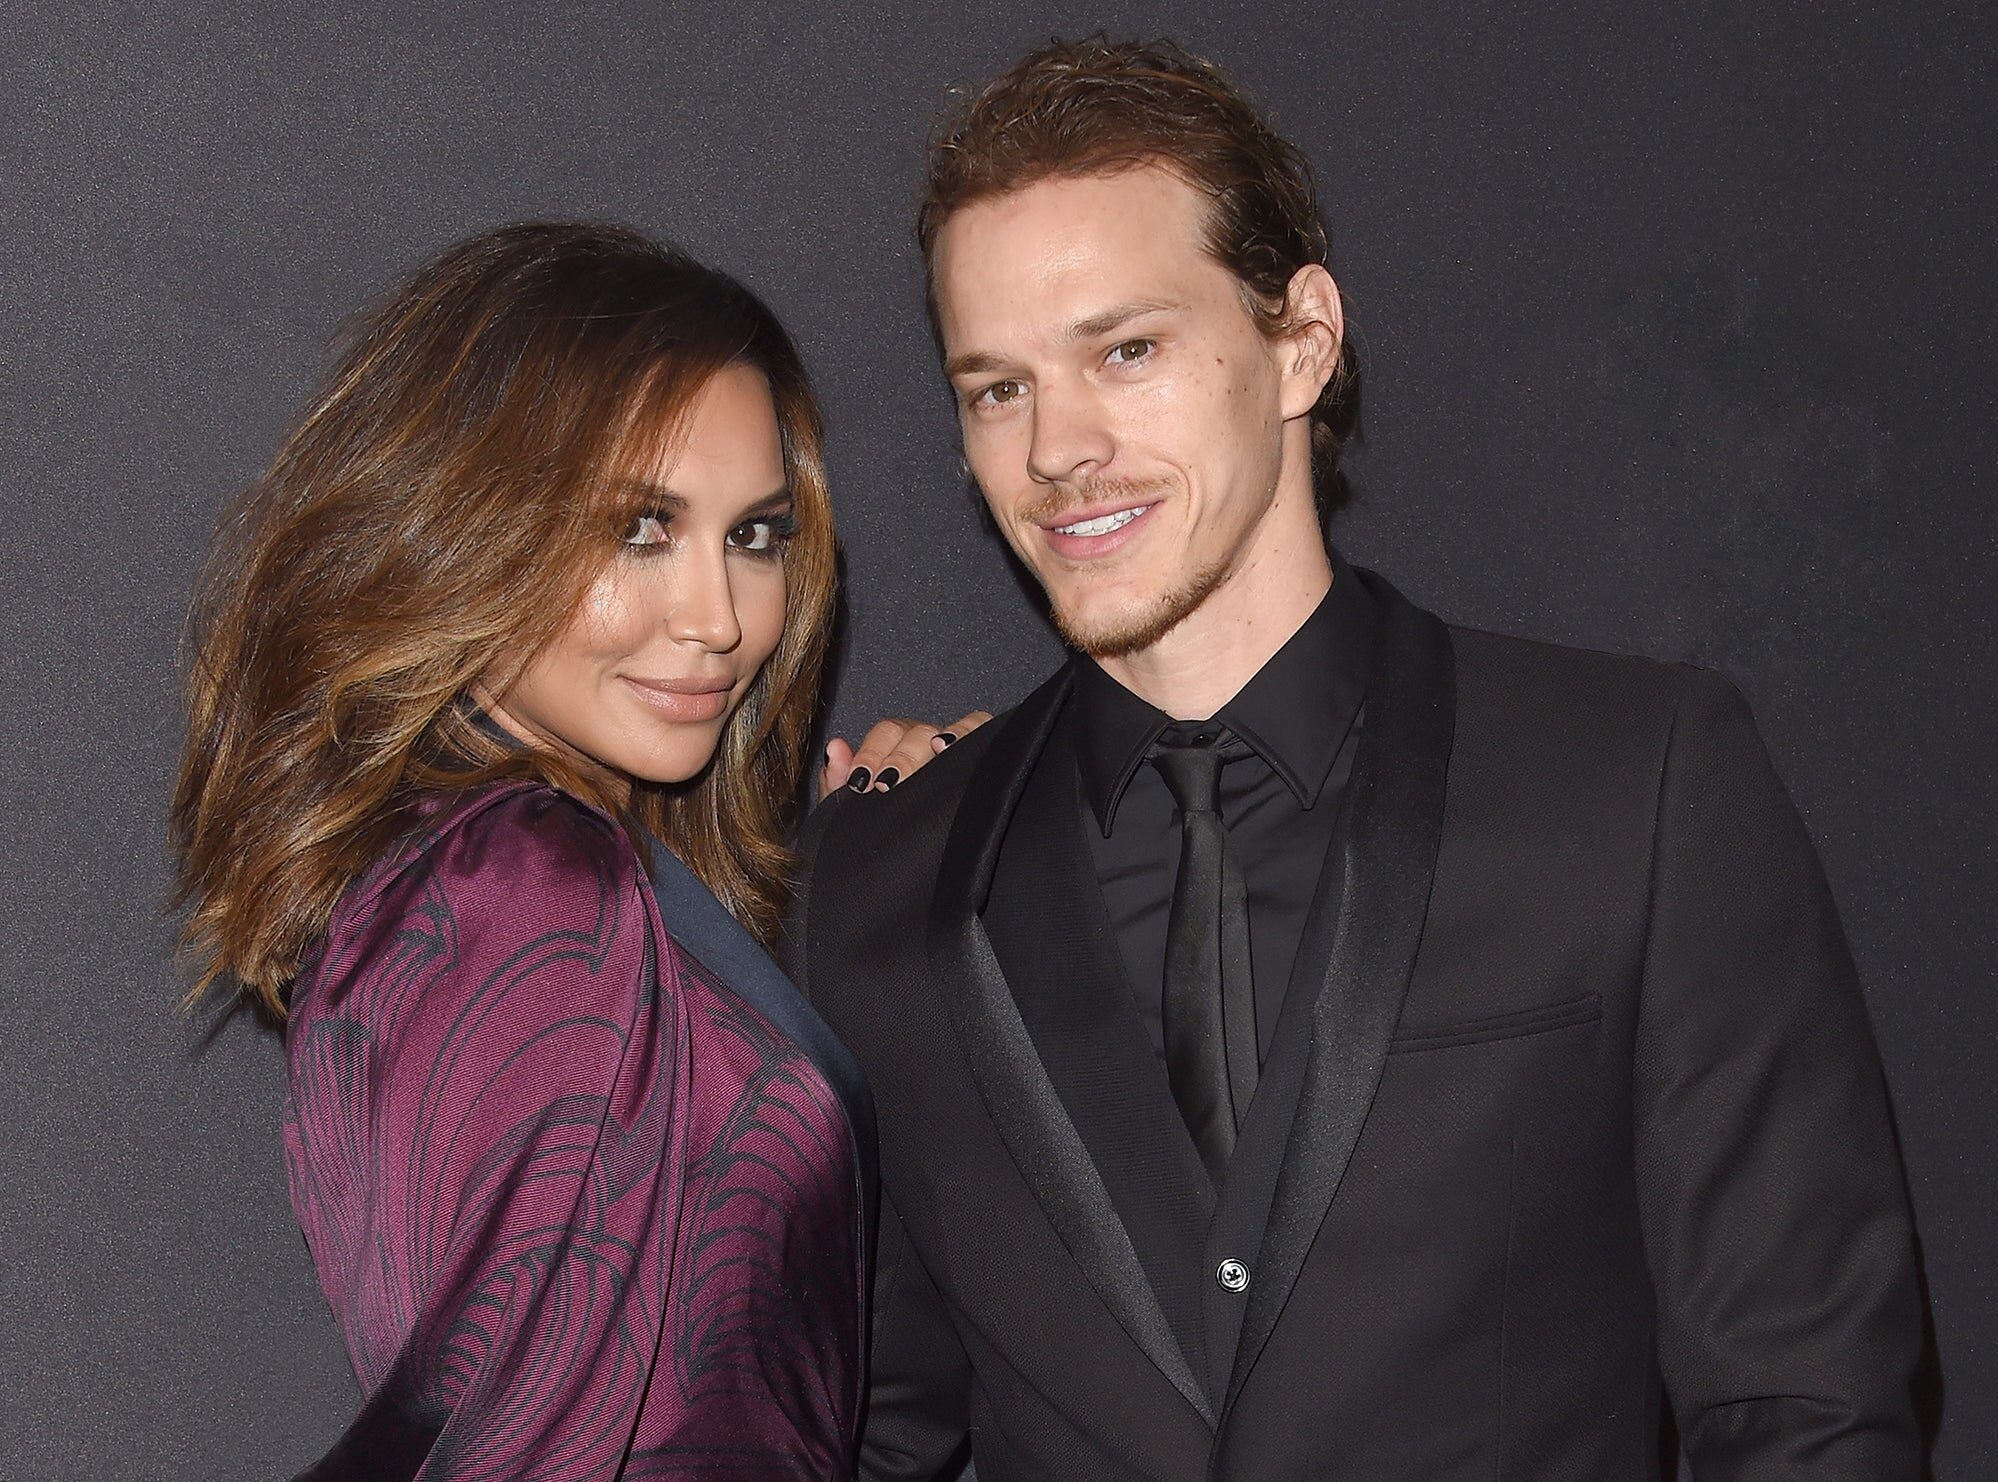 Ryan Dorsey Shares Touching Message to Naya Rivera on the One Year Anniversary of her Memorial Service.